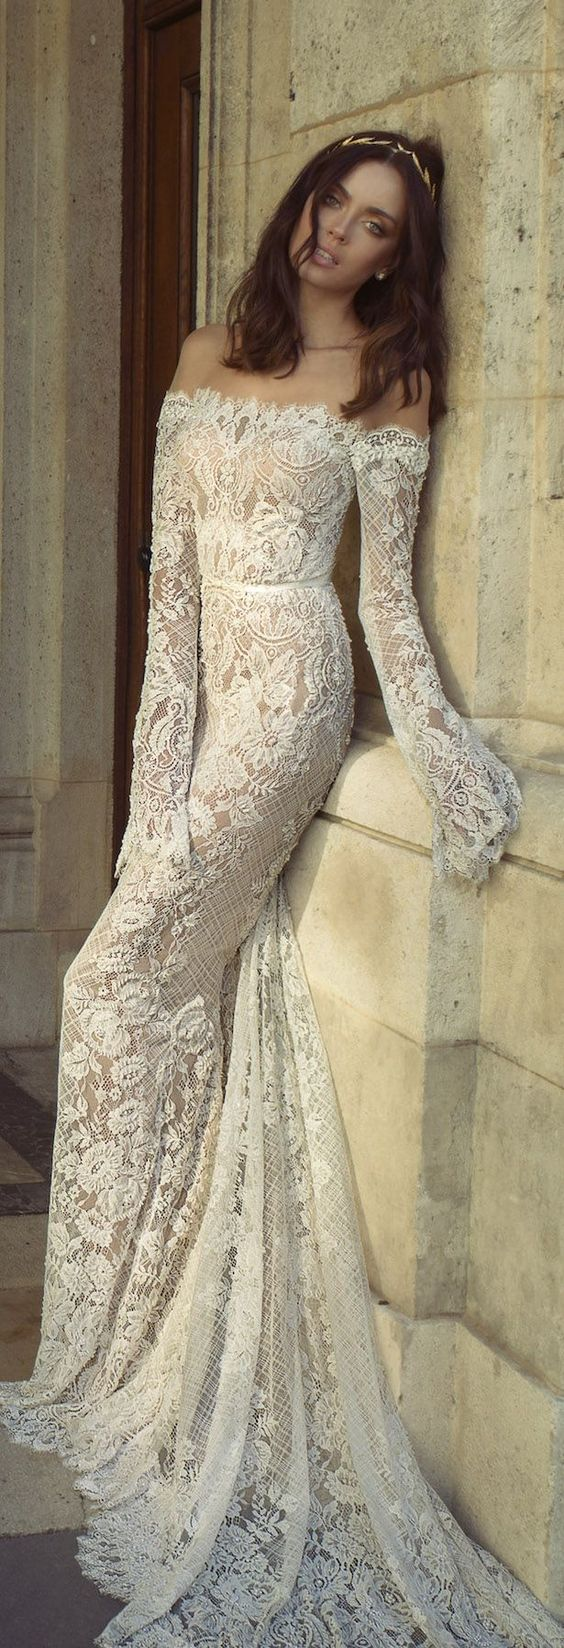 I have my dress and love it but just had to pin this coz it's so beautiful. .... love the sleeves!